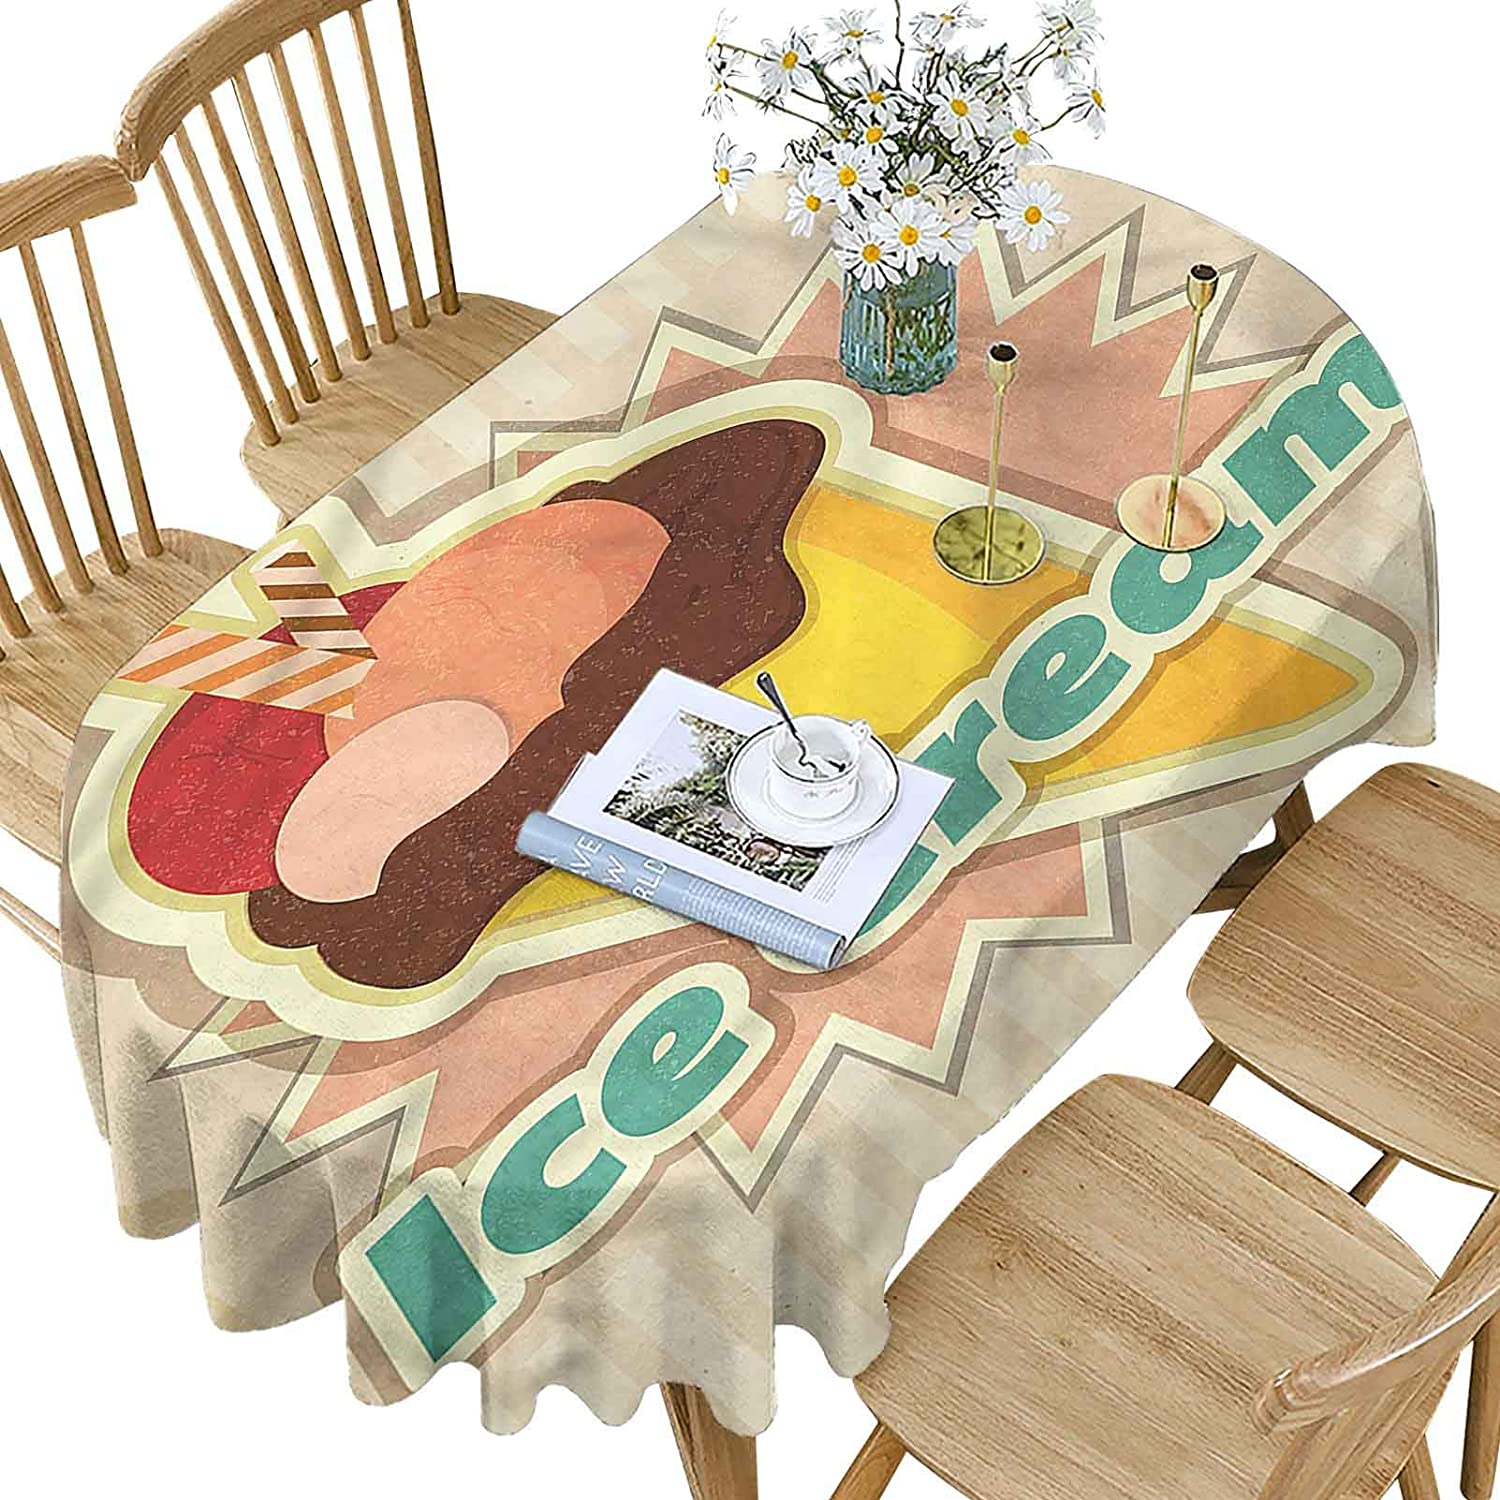 Hiiiman trust Ice Cream Polyester Oval Vintage Tablecloth Patter Large special price Funky